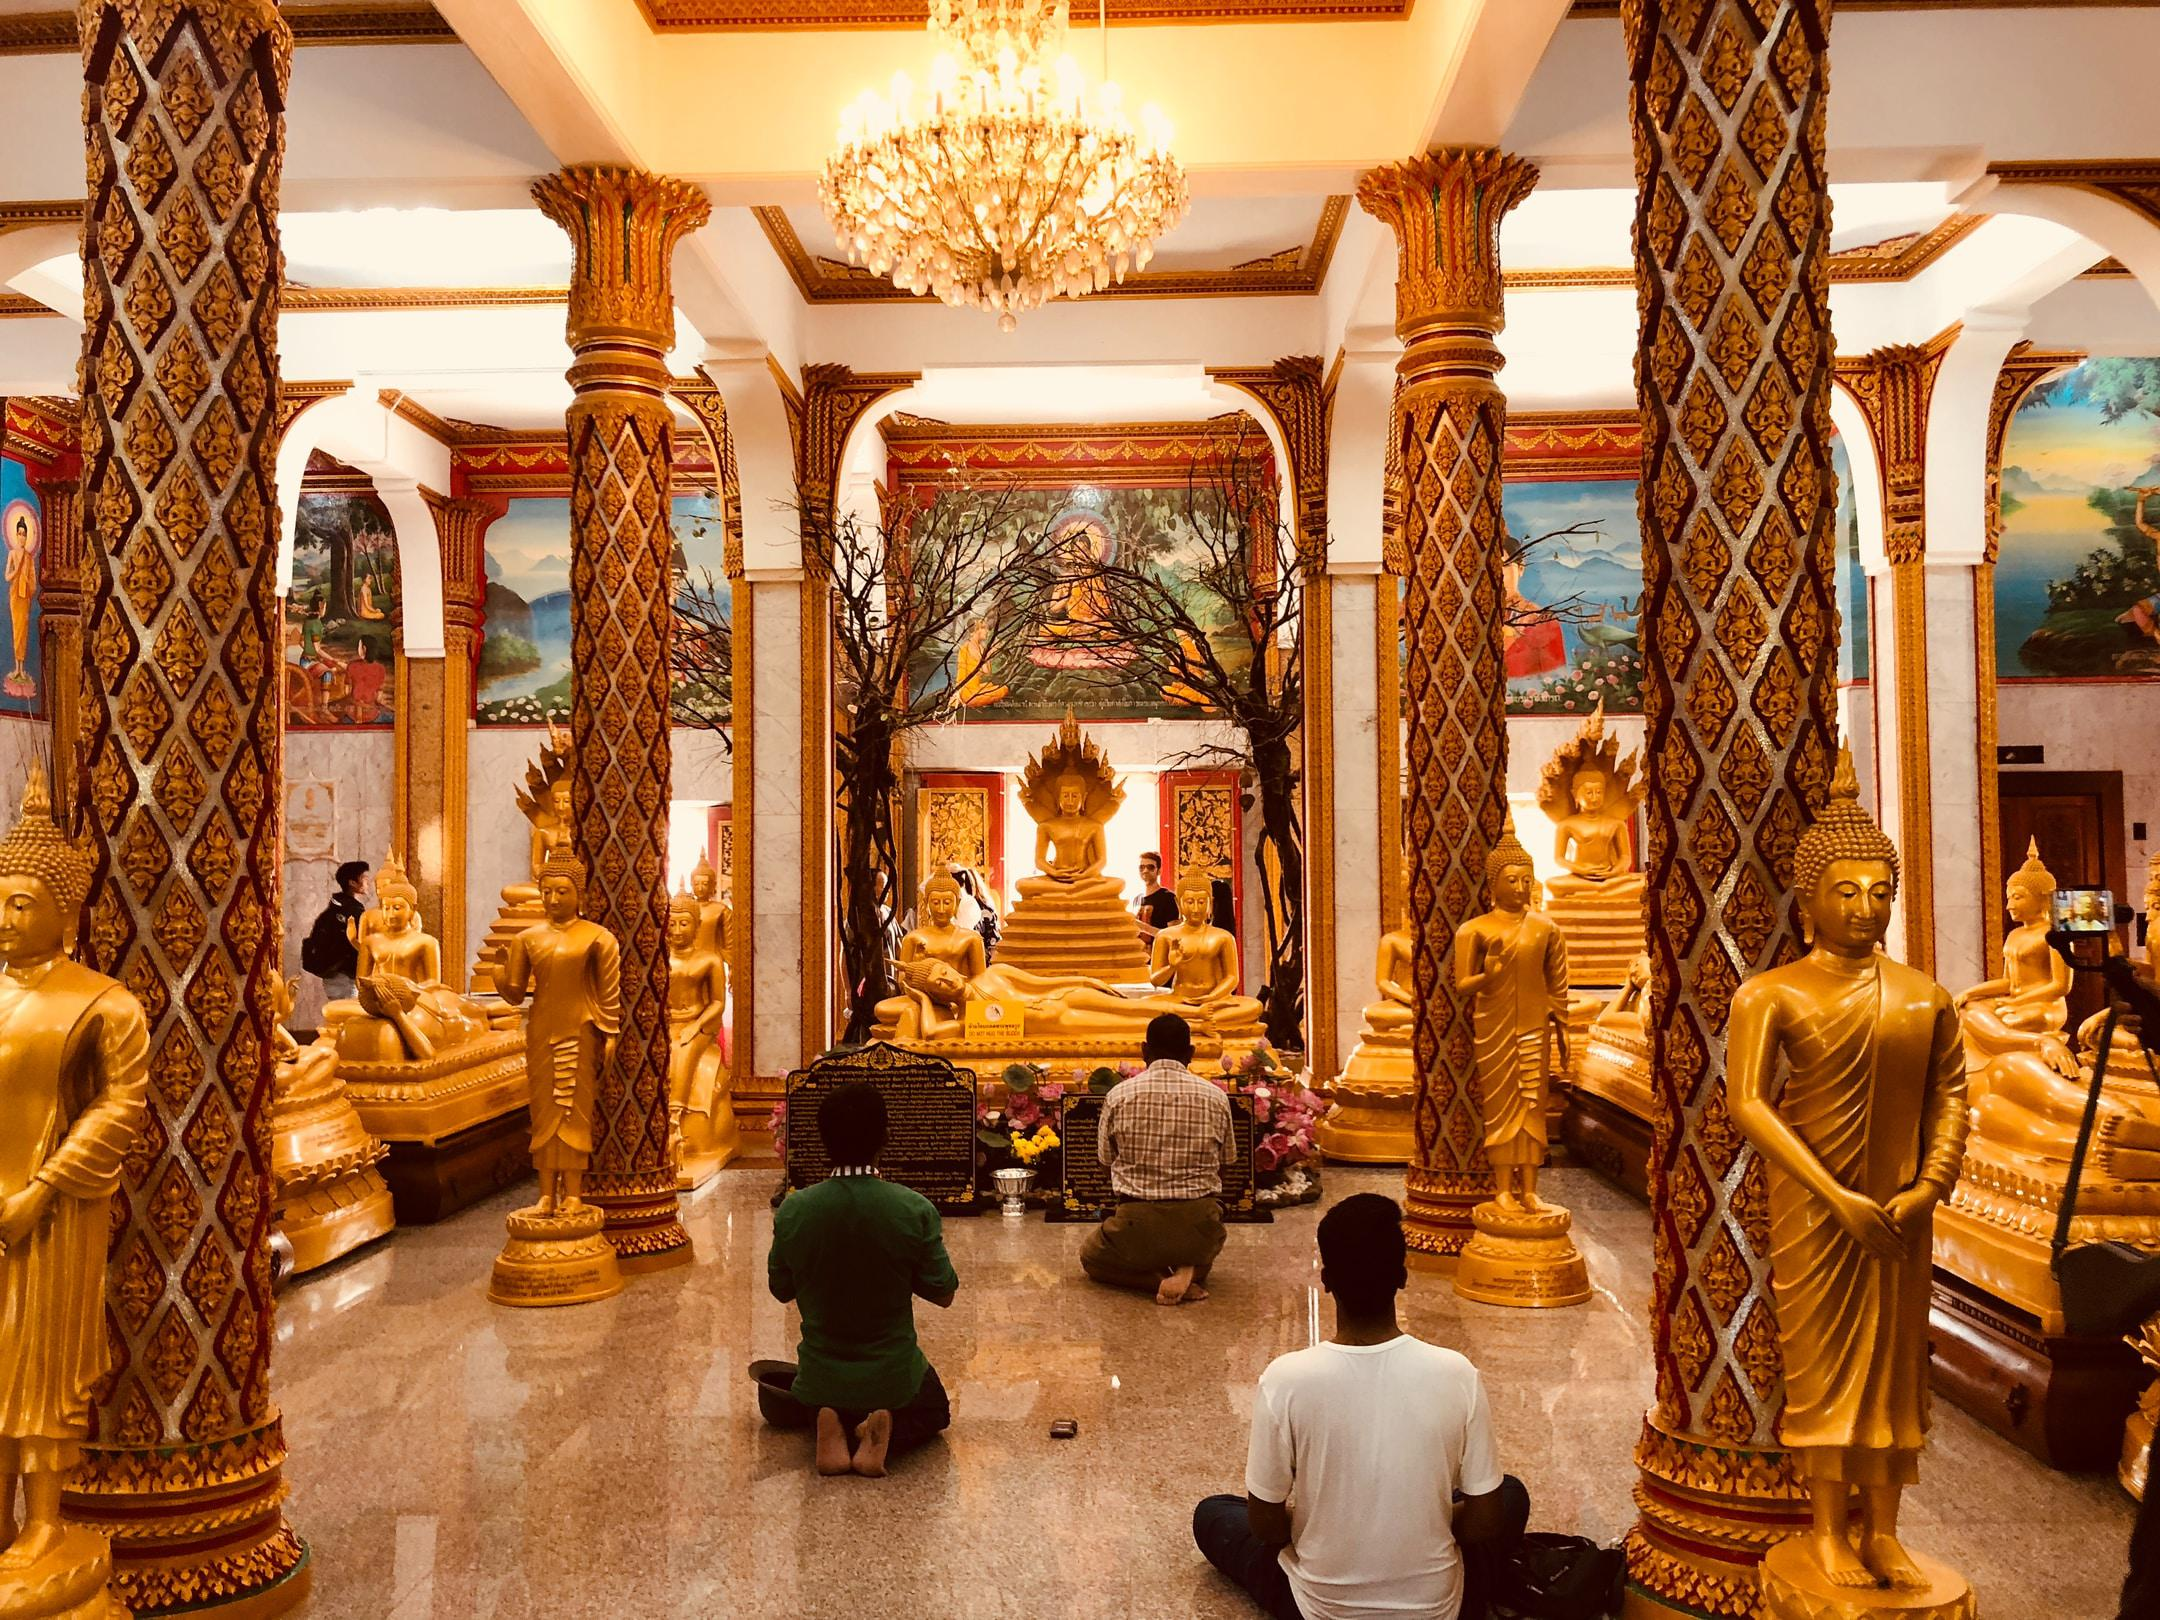 People praying inside Thai Buddhist temple with gold accent.